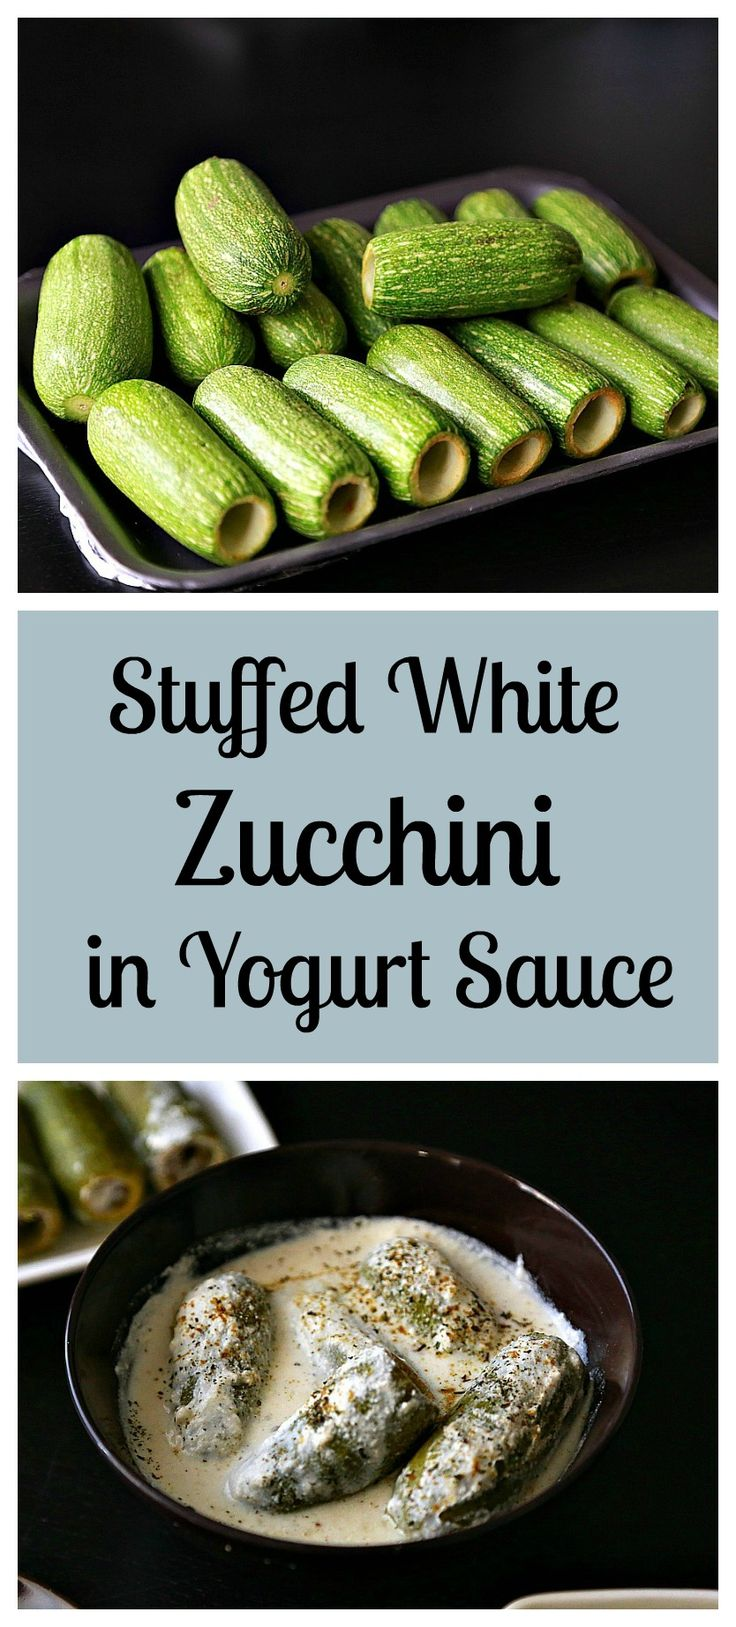 Stuffed White Zucchini in Yogurt Sauce (Kousa bel laban) These stuffed white zucchini with yogurt are the definition of a comfort meal! Eat it as it, or mix it with white rice. It's healthy, and gluten free!